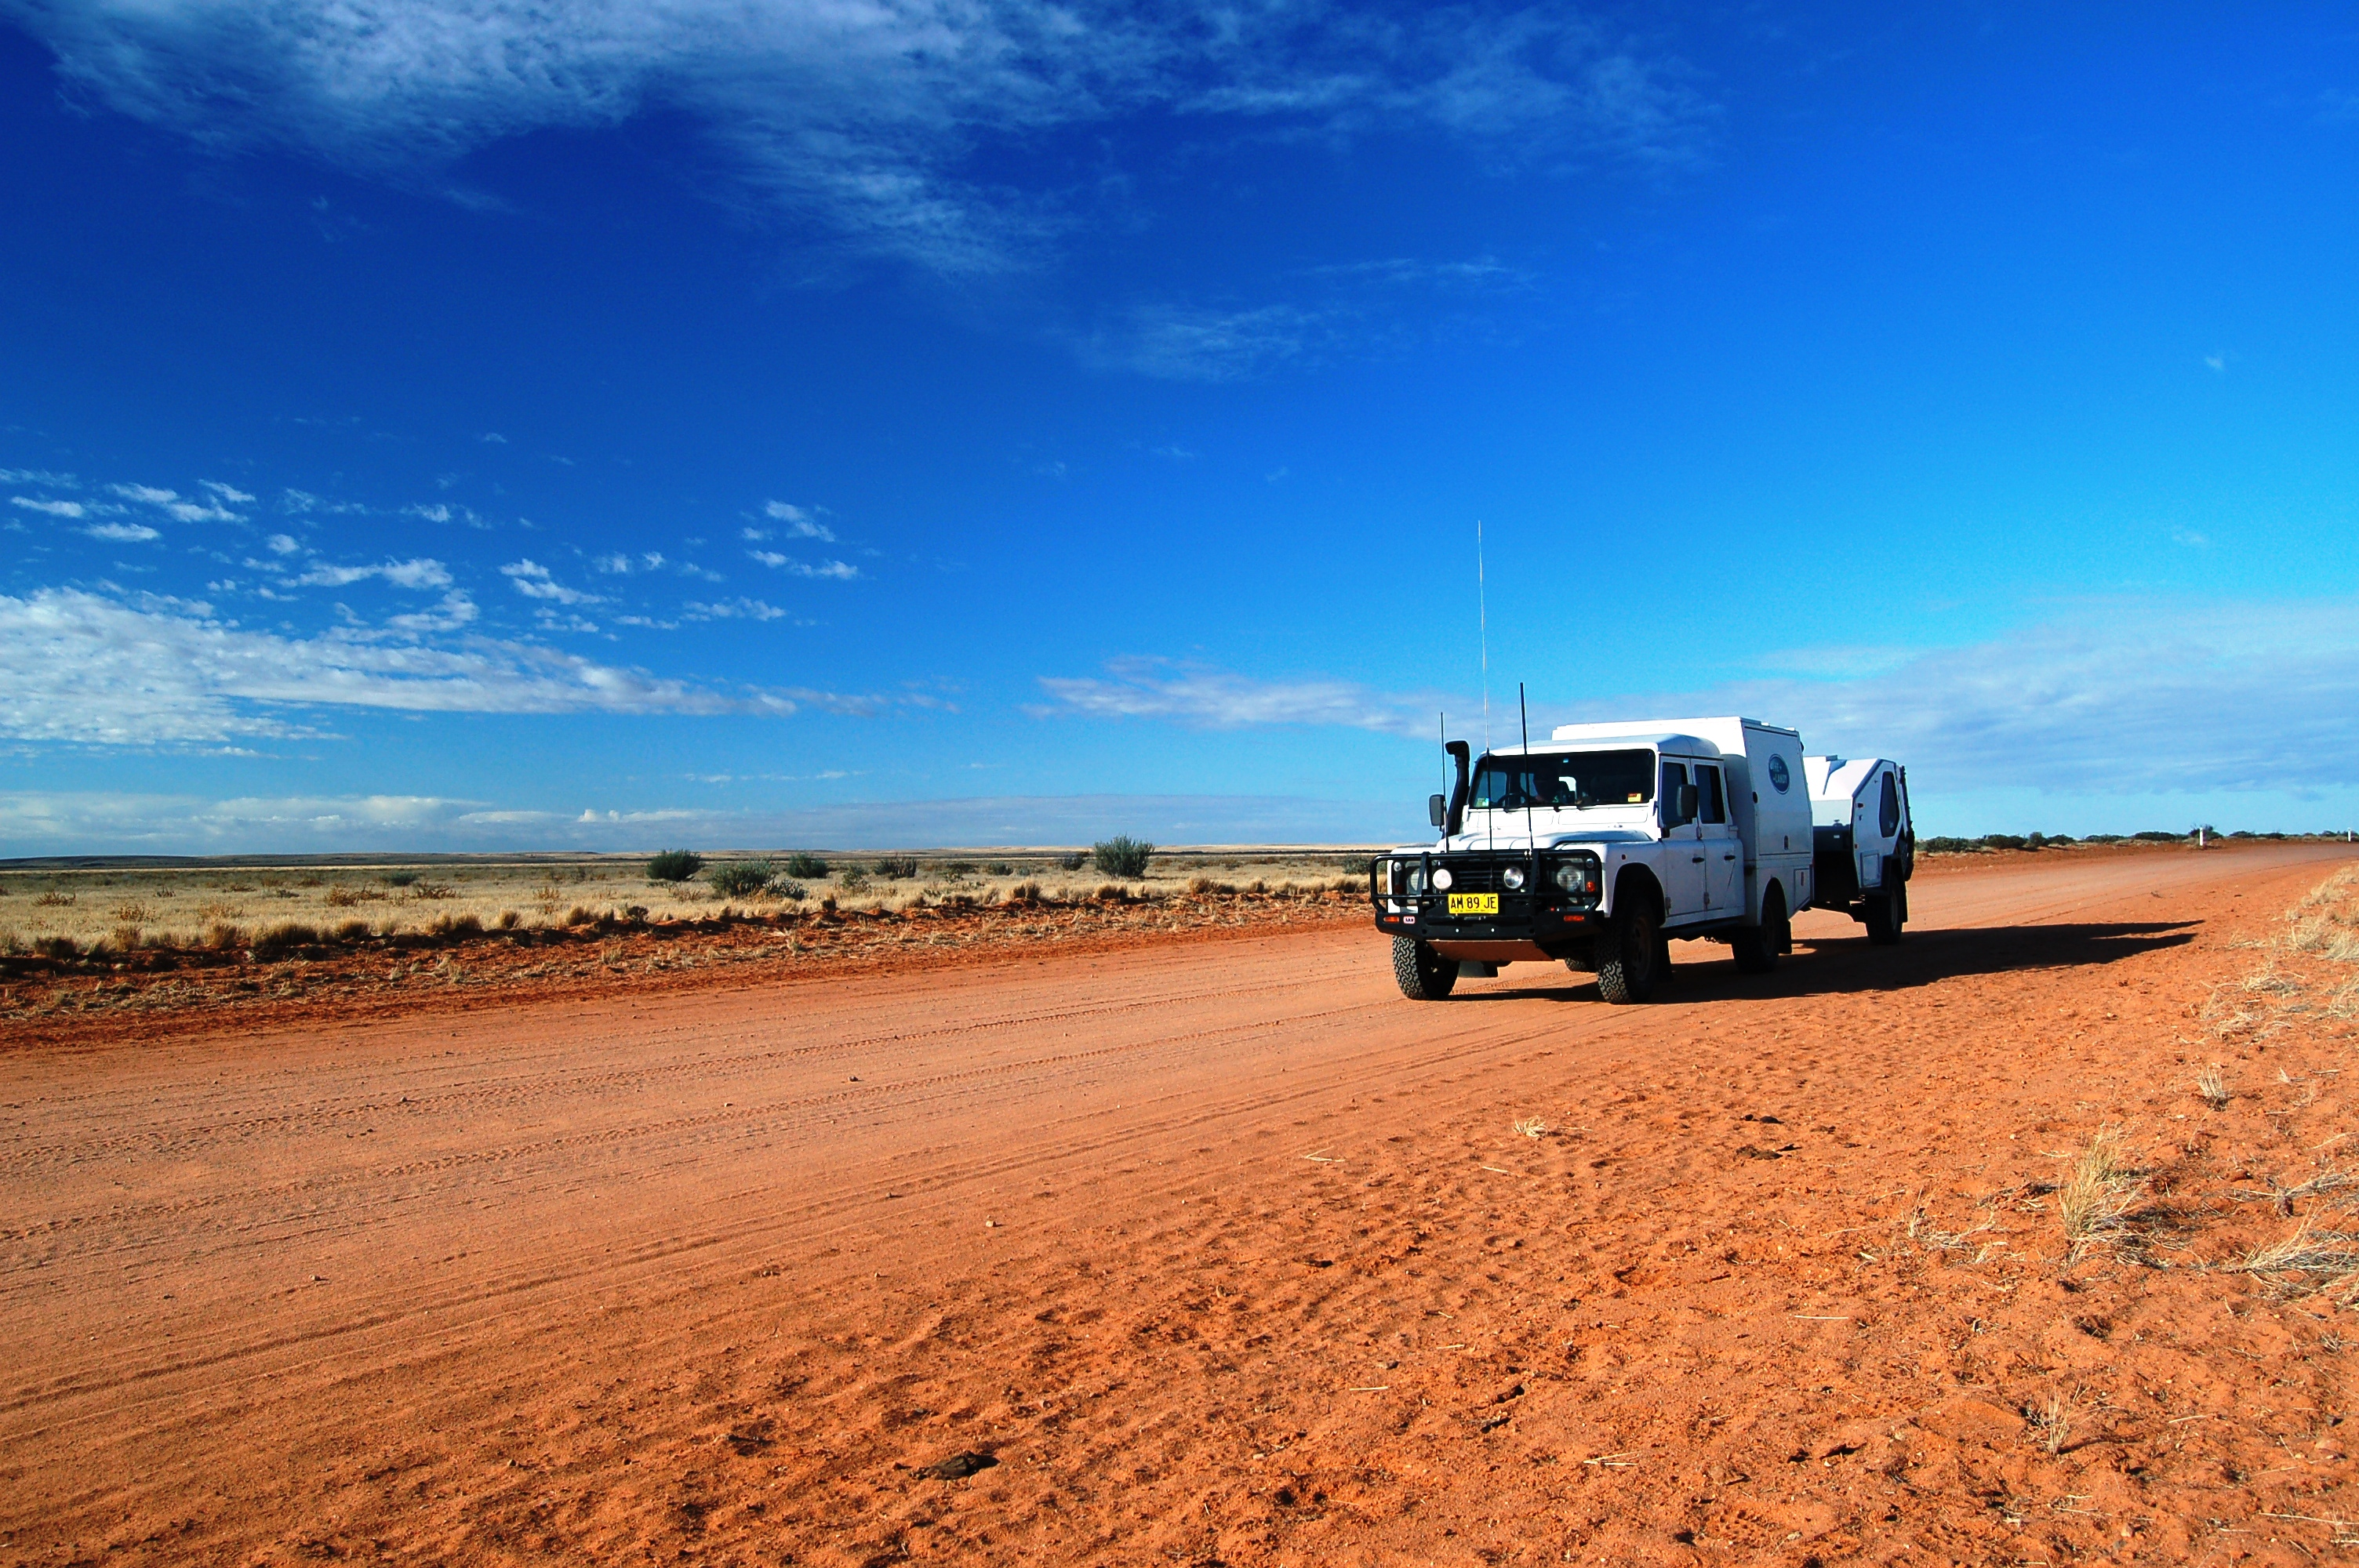 The Landy, Outback Australia (with antennas for the communication radios)